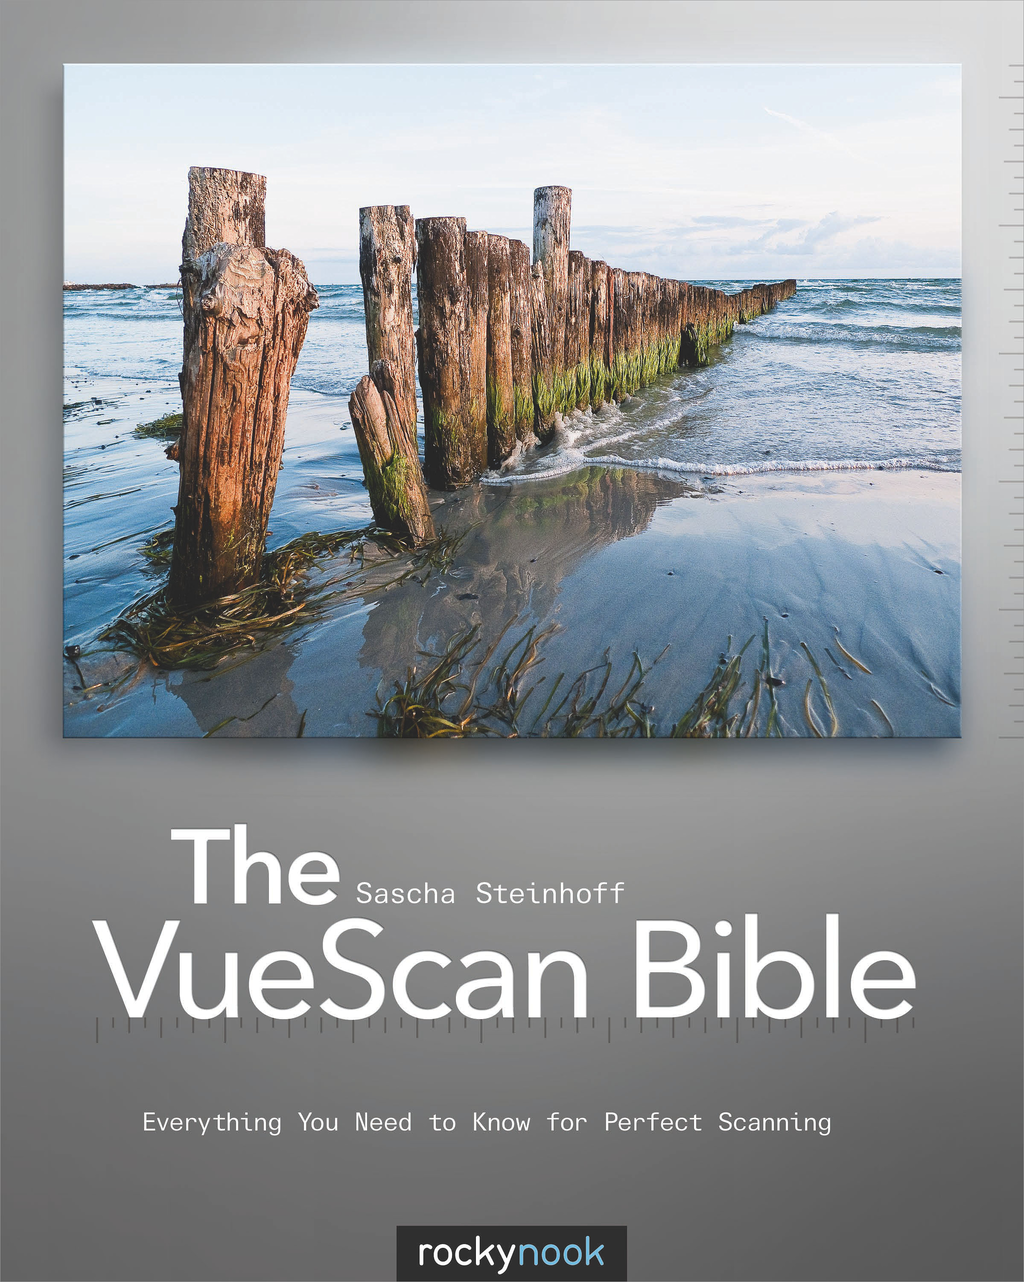 The VueScan Bible